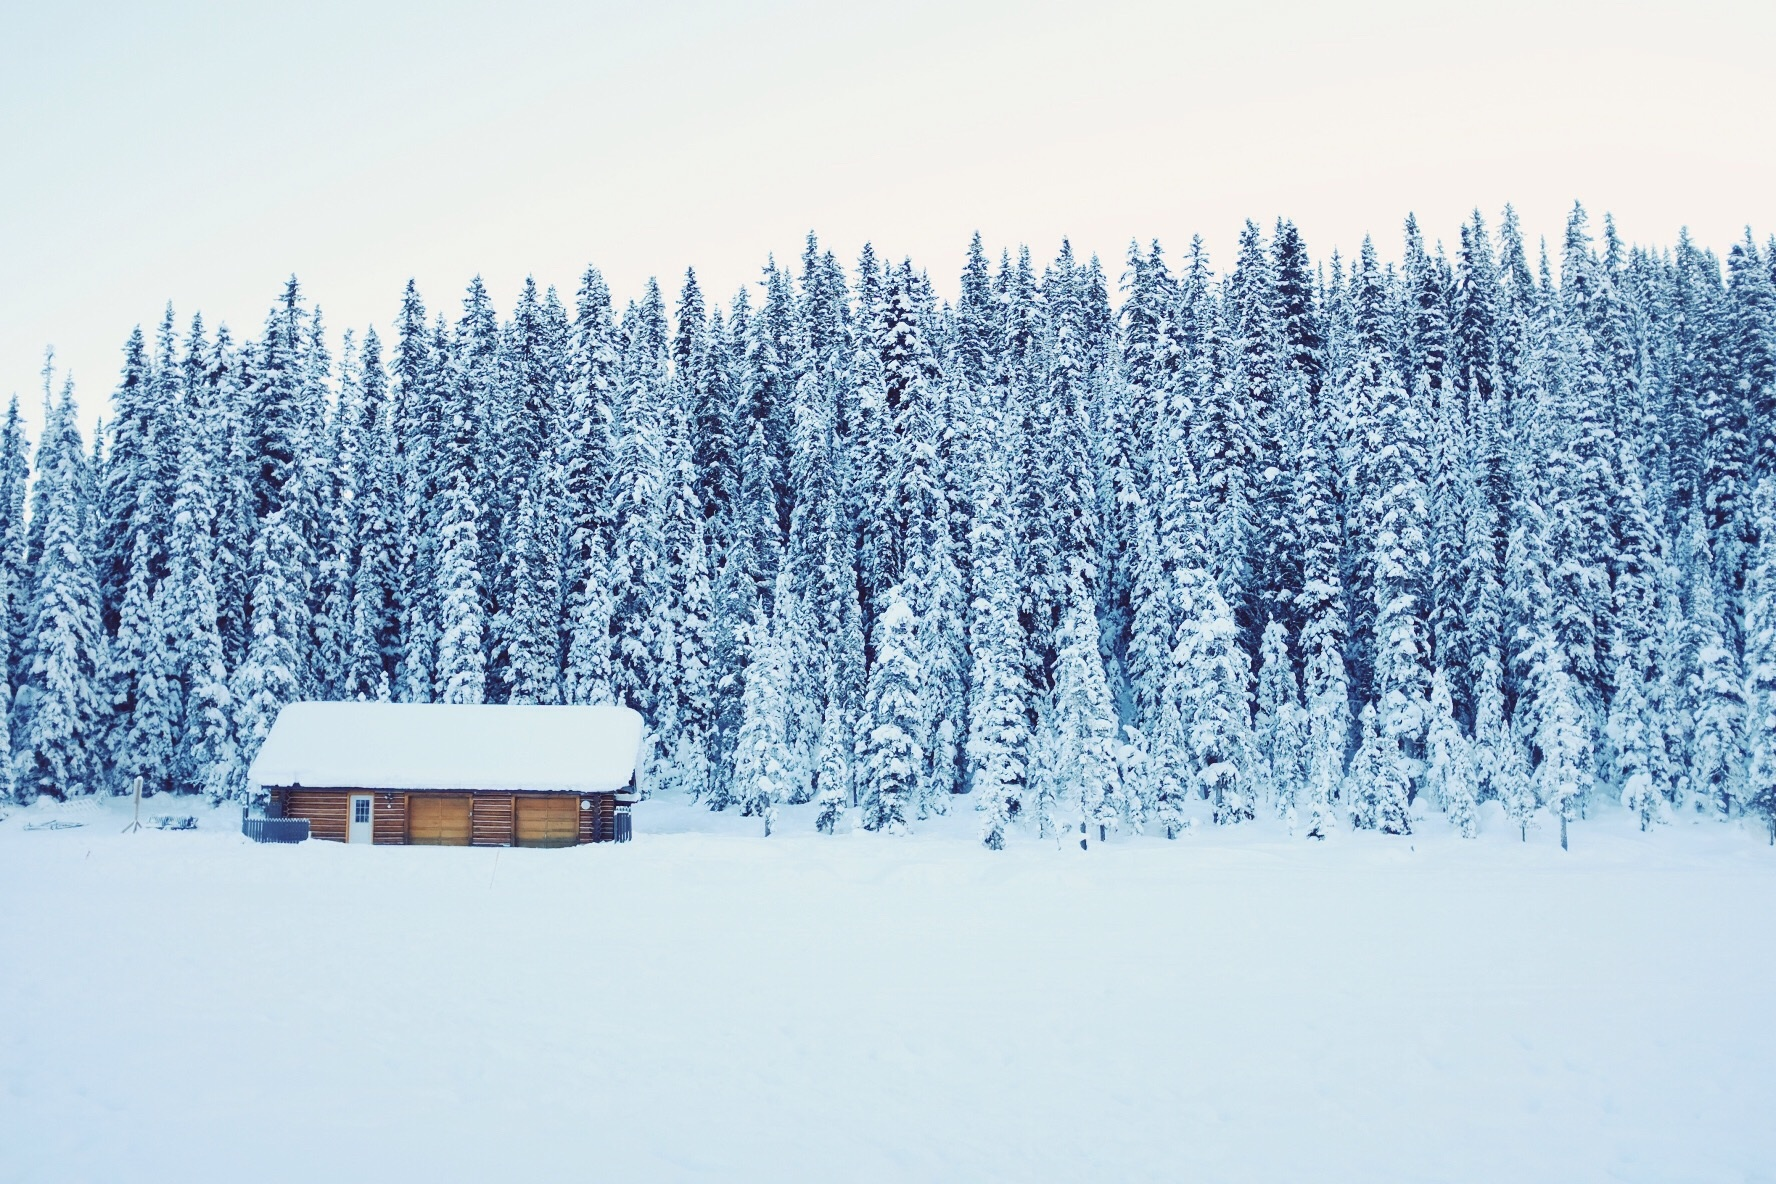 House, Bunch, Forest, Ice, Landscape, HQ Photo